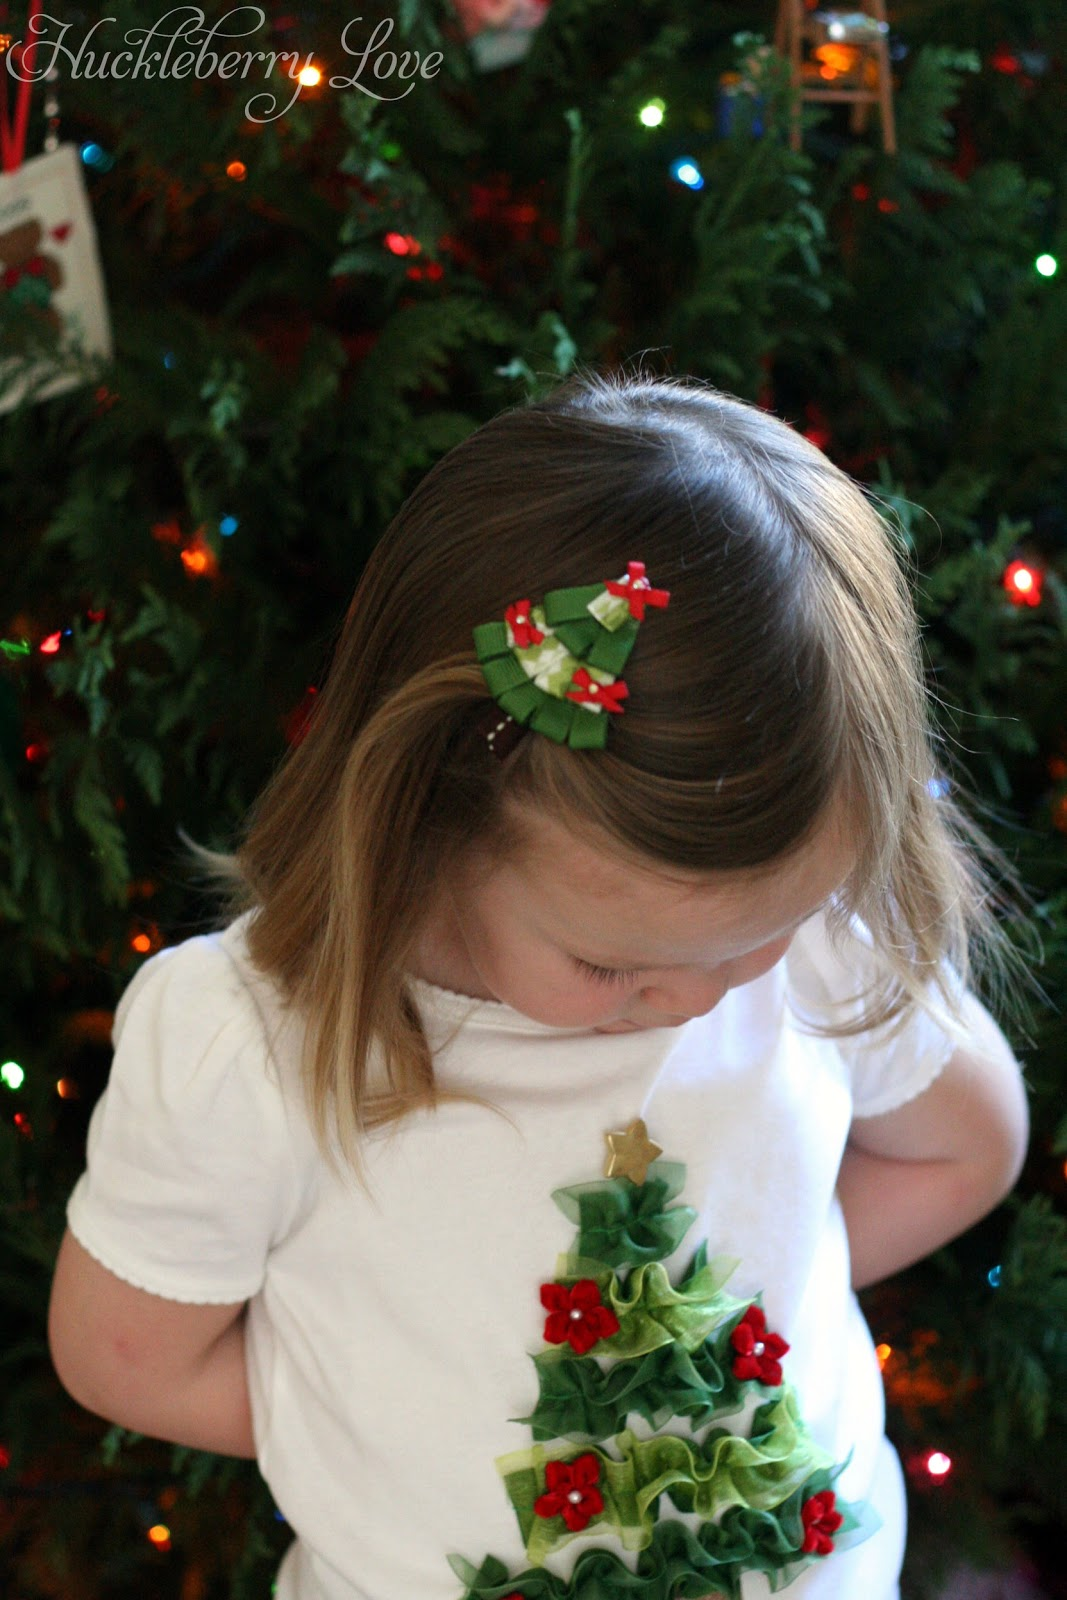 How ro decorate a christmas tree with ribbon - Huckleberry Love Christmas Tree Hair Clip Tutorial